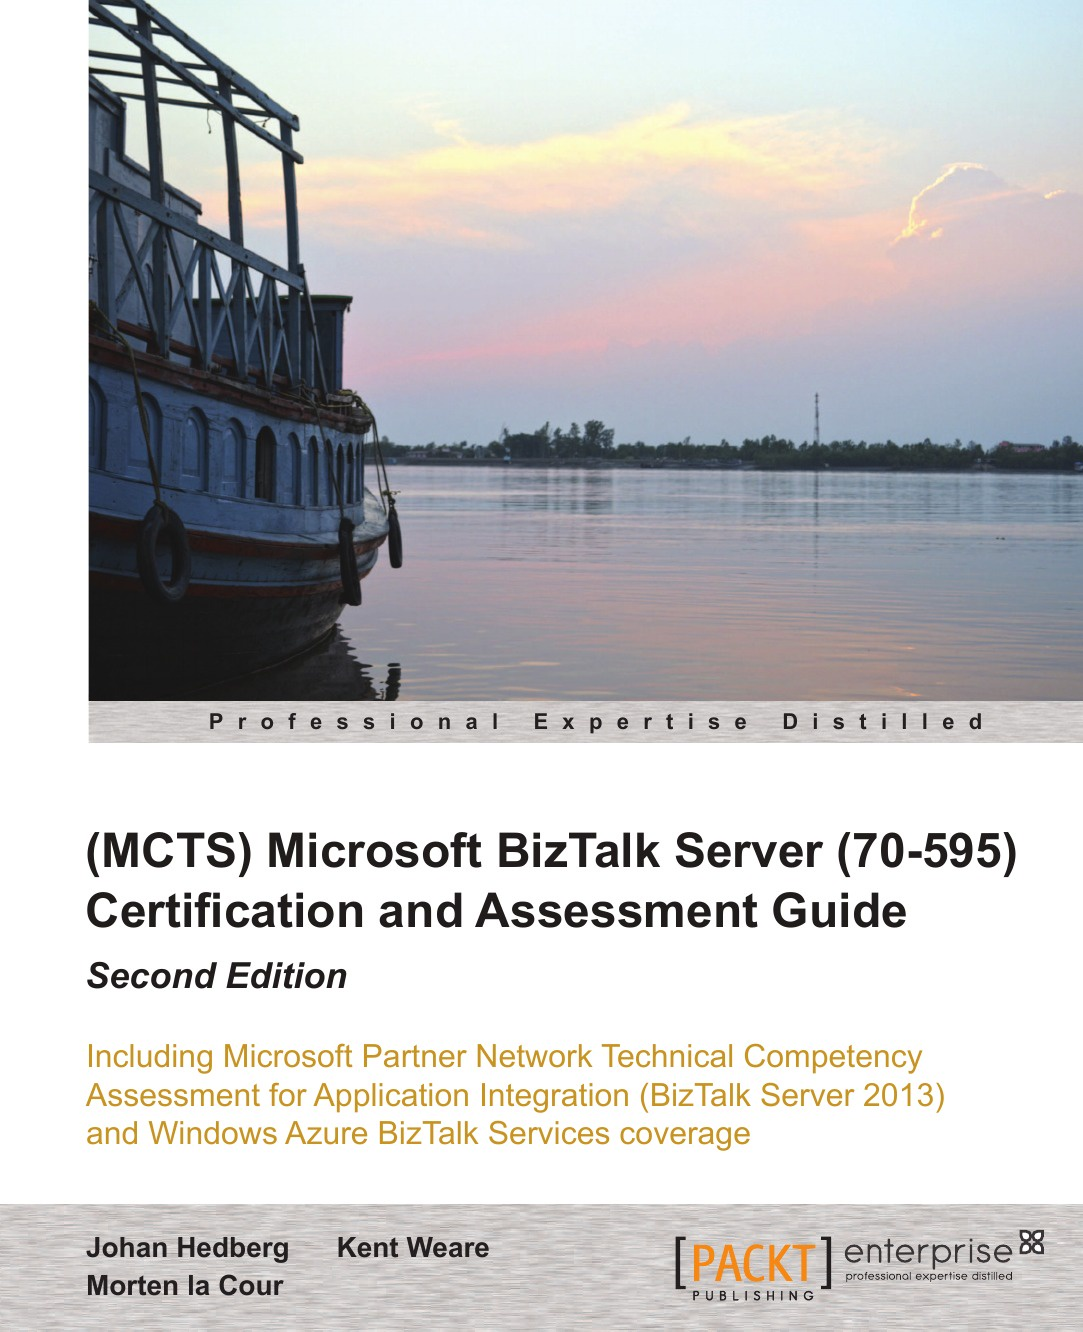 Johan Hedberg, Morten La Cour, Kent Weare Microsoft BizTalk Server 2010 (70-595) Certification Guide (Second Edition) david elfassy mastering microsoft exchange server 2013